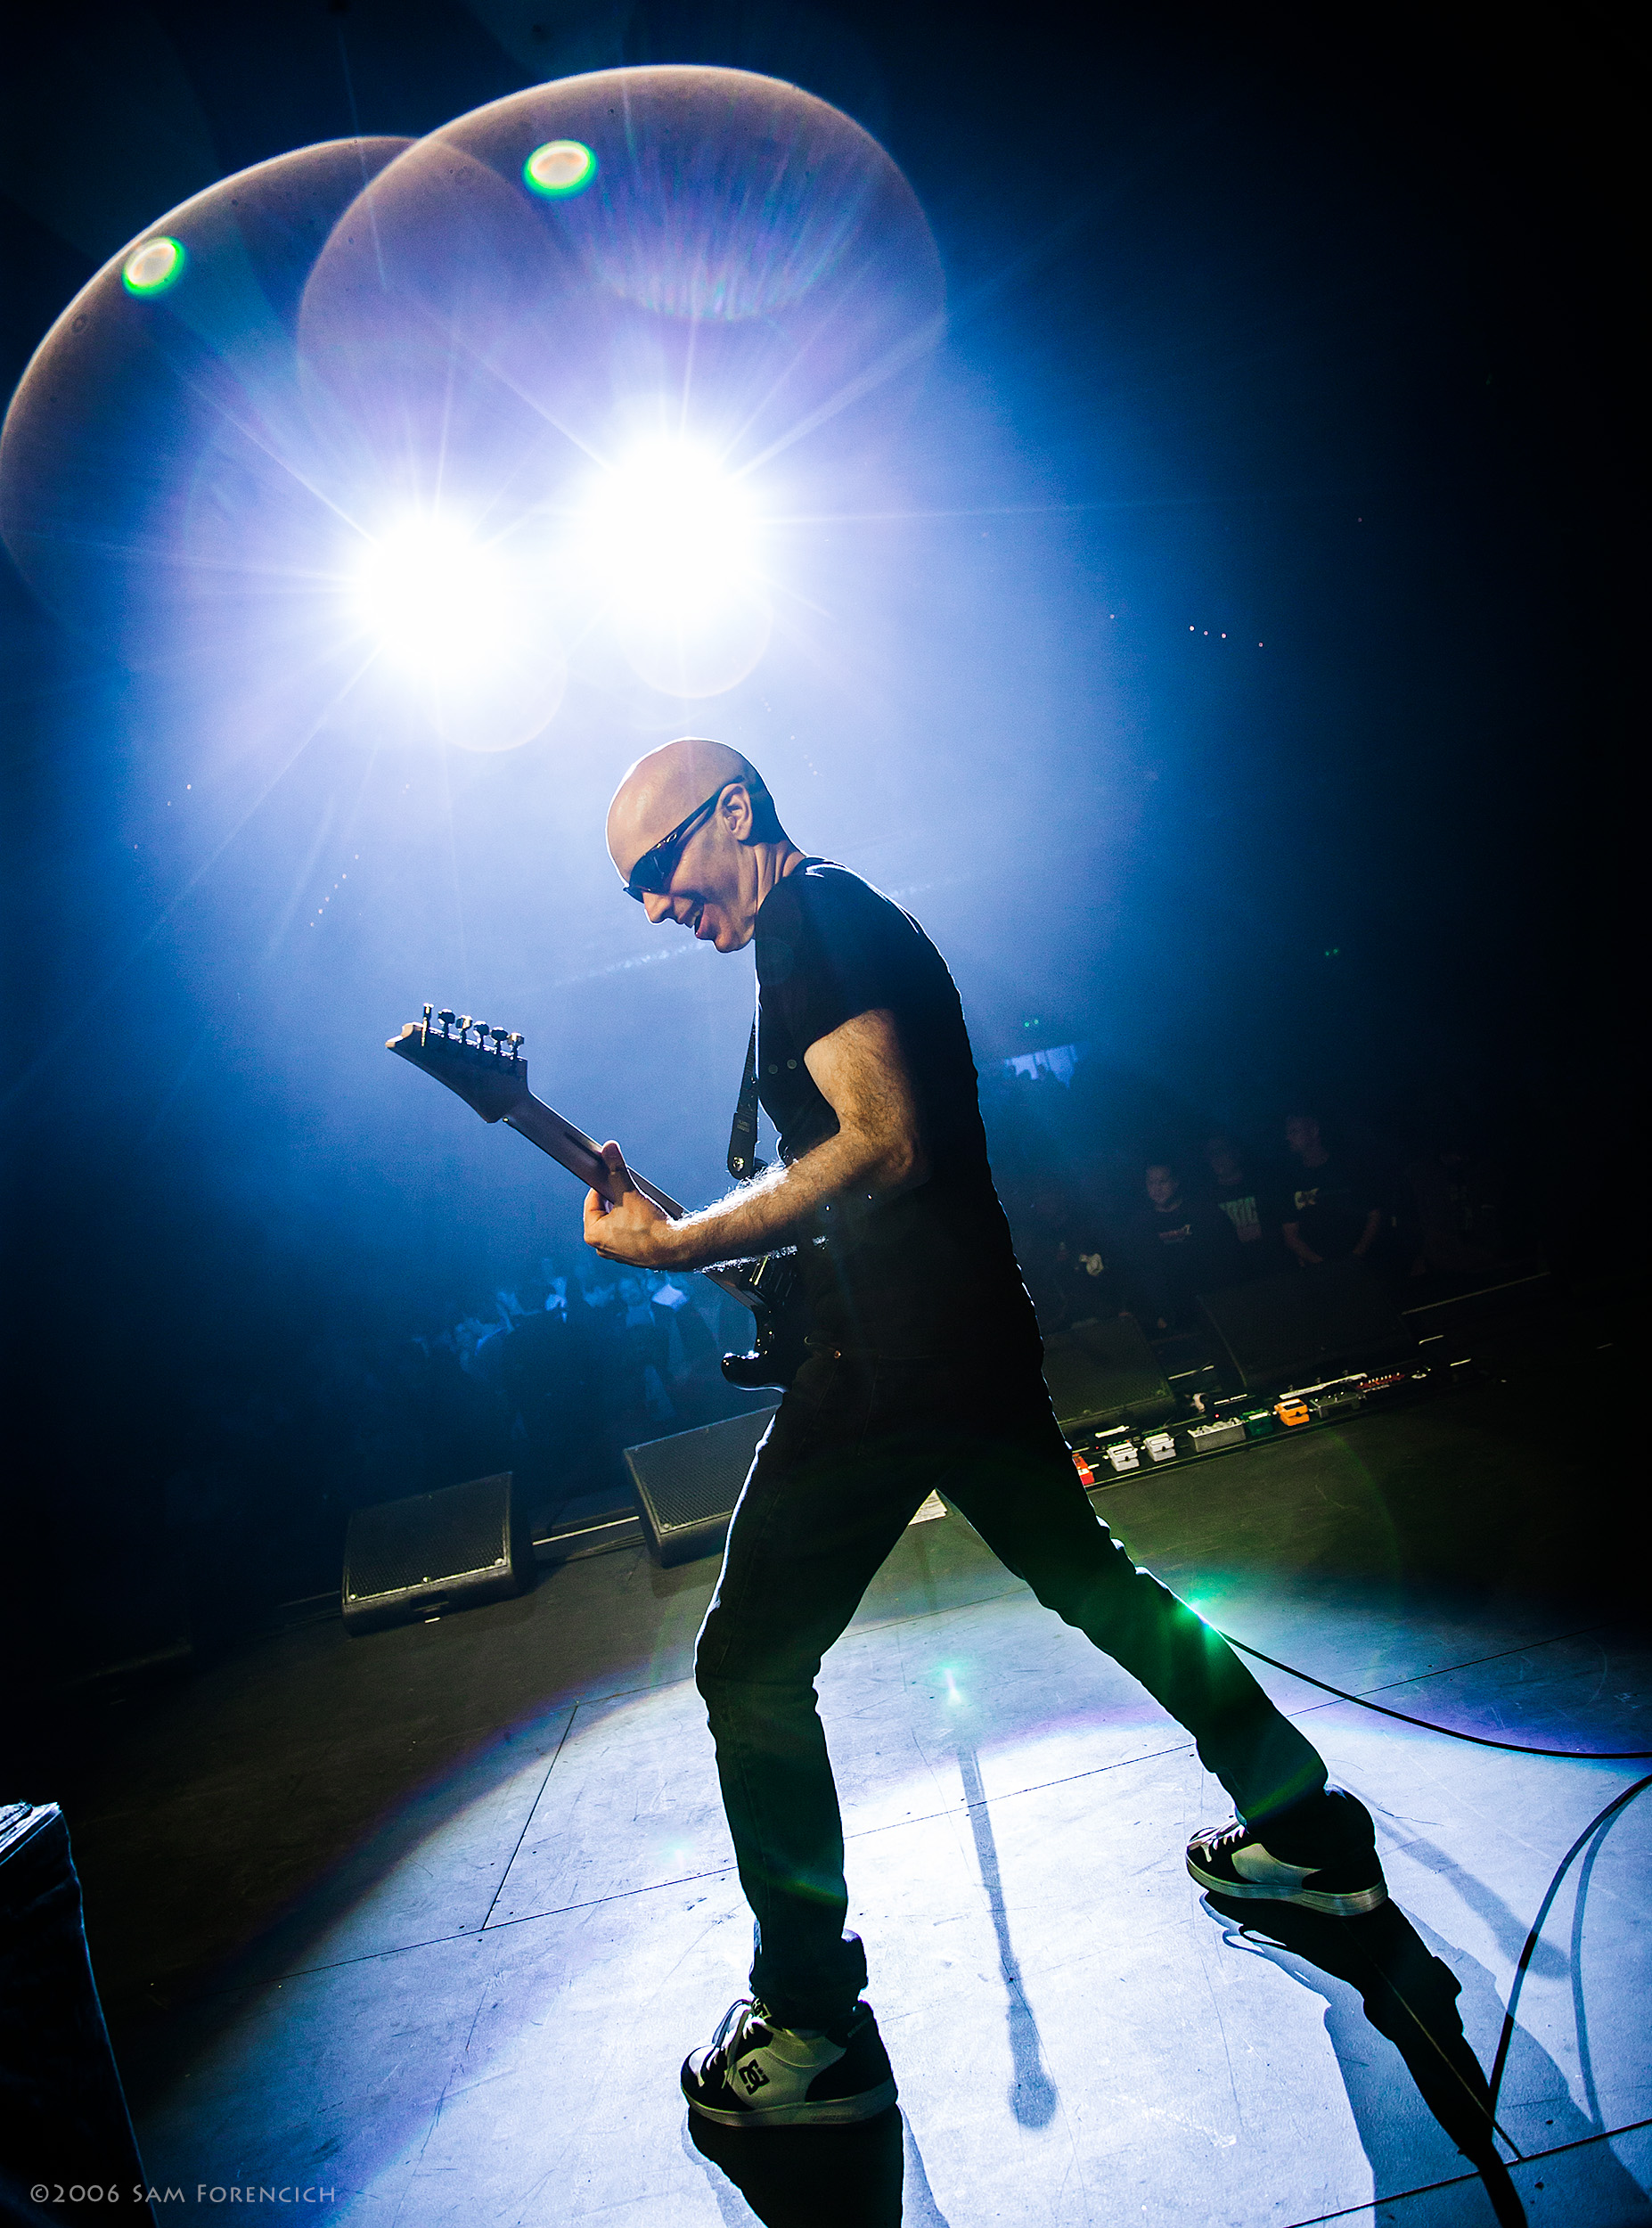 May 2006,Seattle, Washington - Joe Satriani performs at the Paramount Theater - 2006 Super Colossal Tour ©2006 Sam Forencich